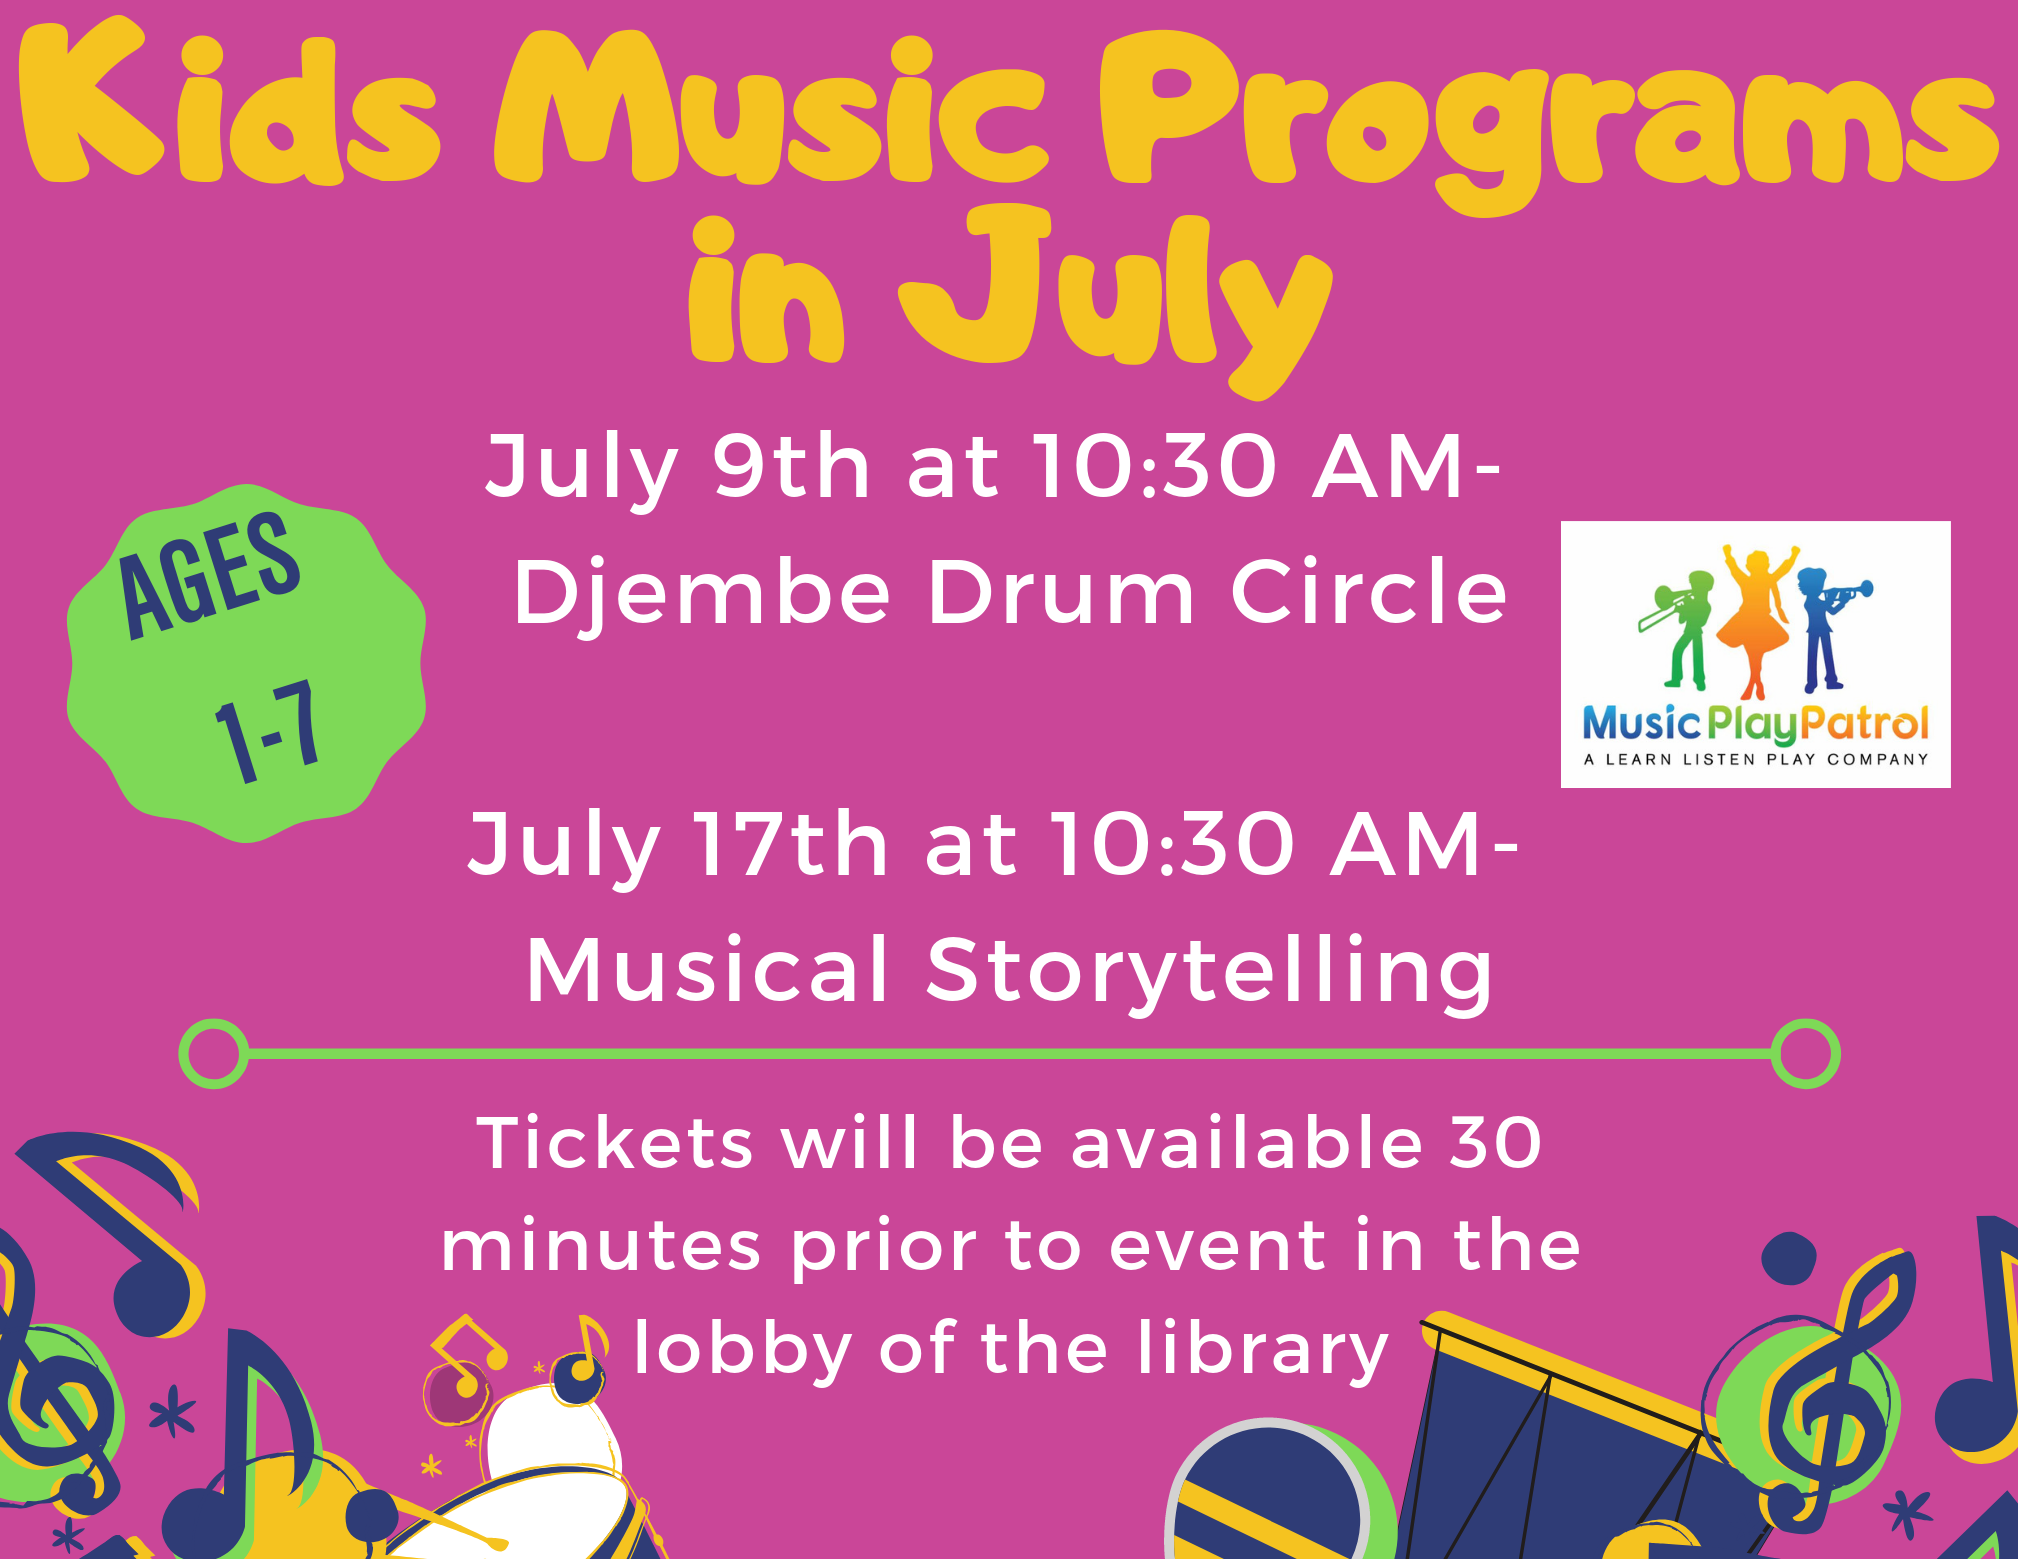 Musical Storytelling with Music Play Patrol